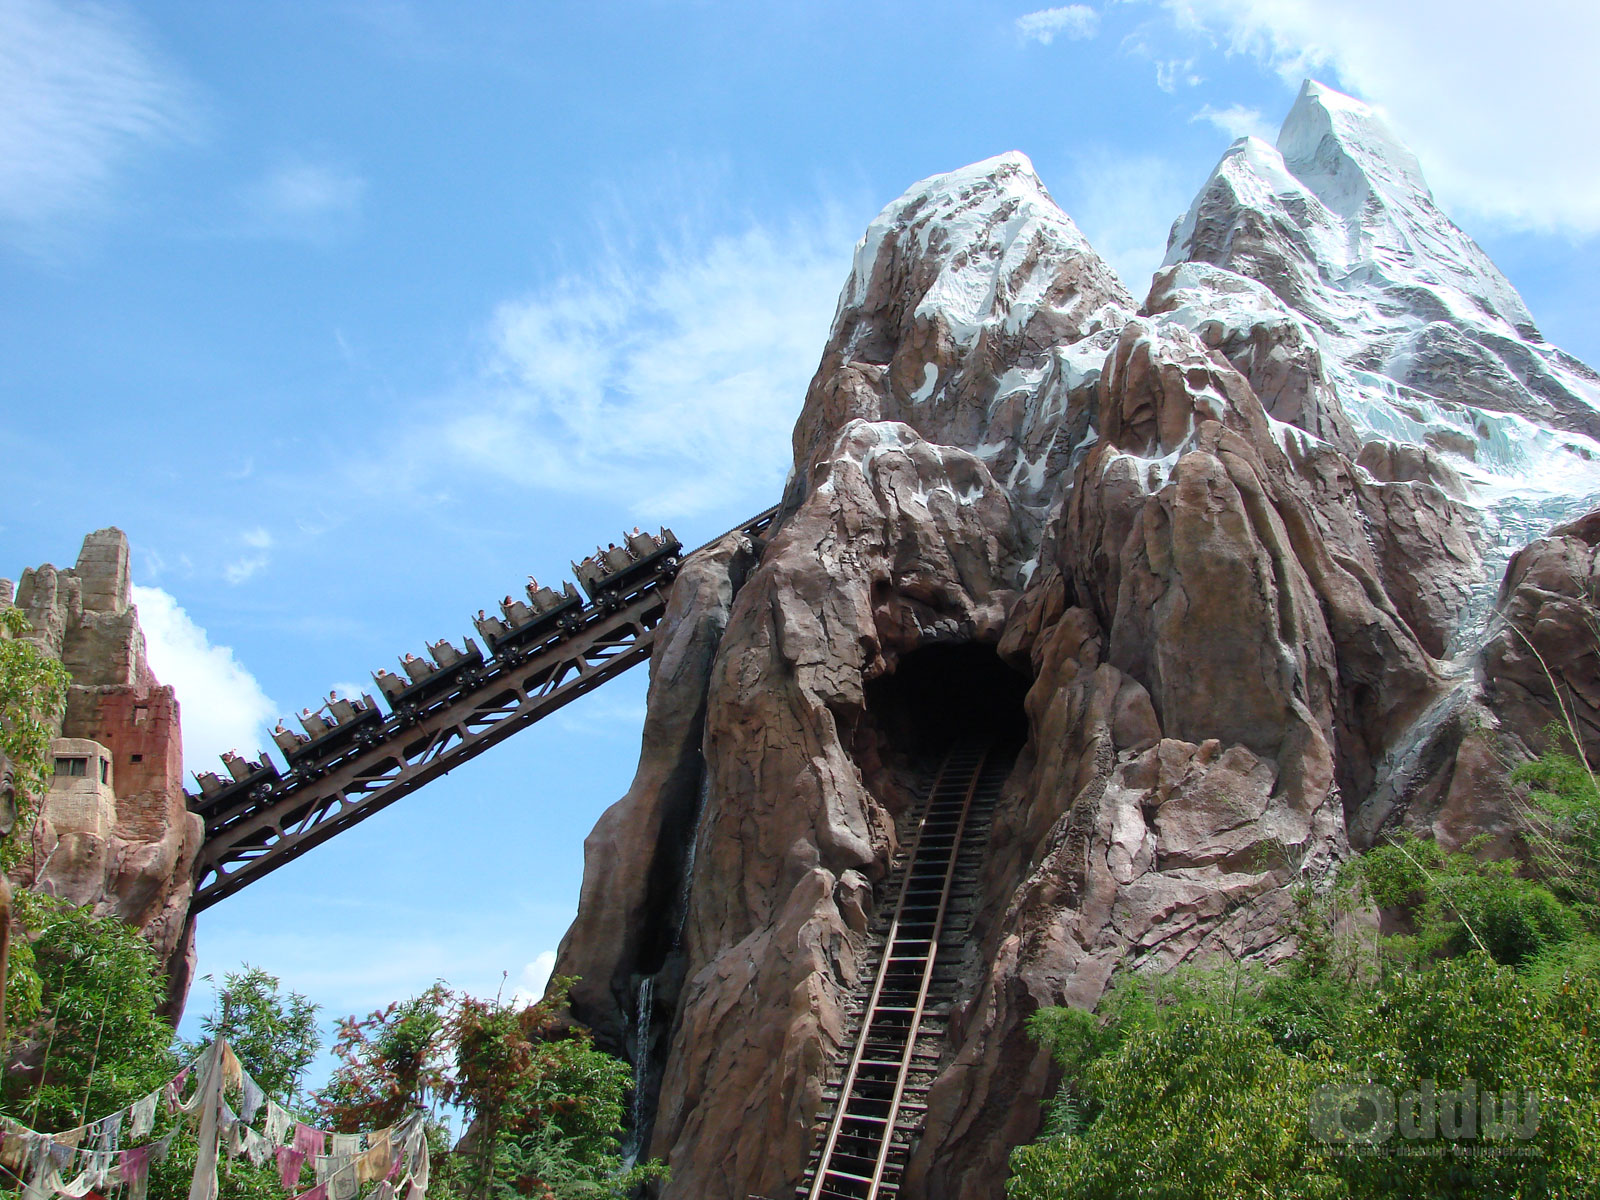 http://4.bp.blogspot.com/_Pi_BEuFvG5w/TUAqgUwbgPI/AAAAAAAAAAs/aZf4i7IMlU8/s1600/expedition-everest-animal-kingdom.jpg